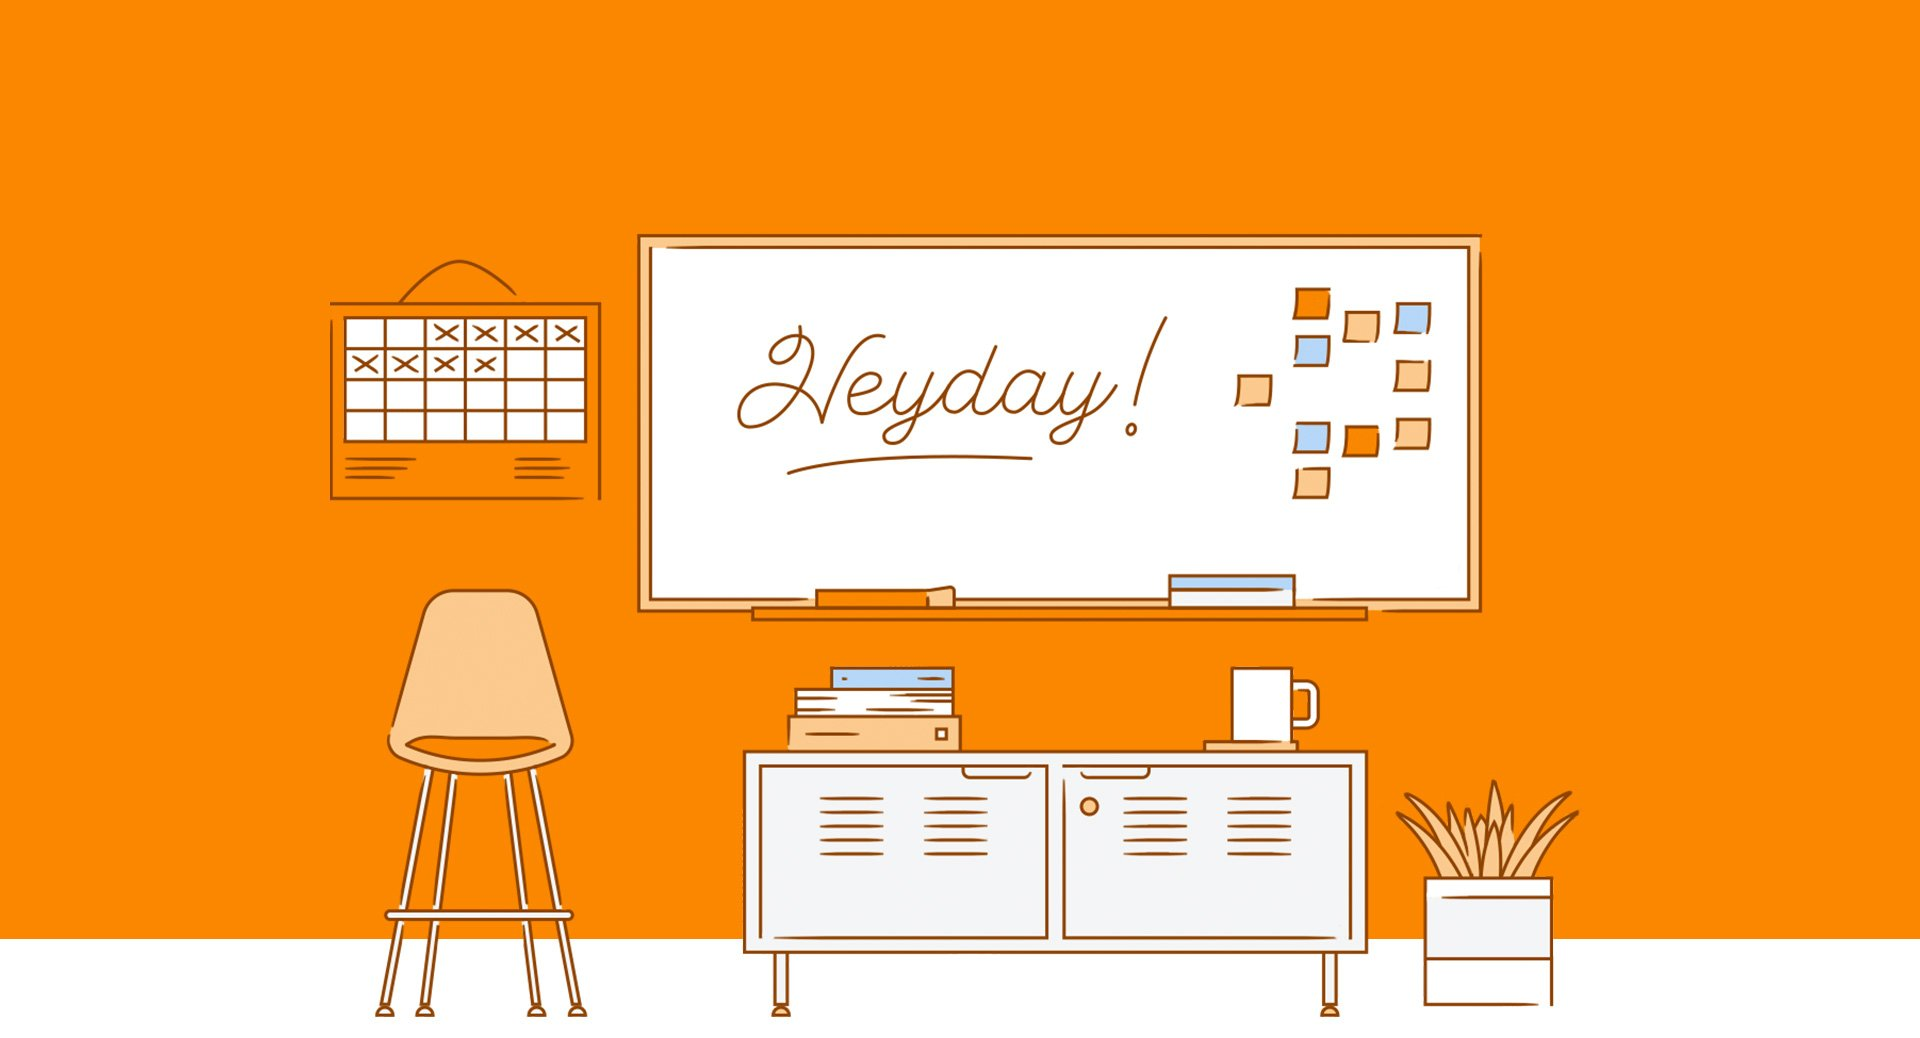 heyday white board illustration